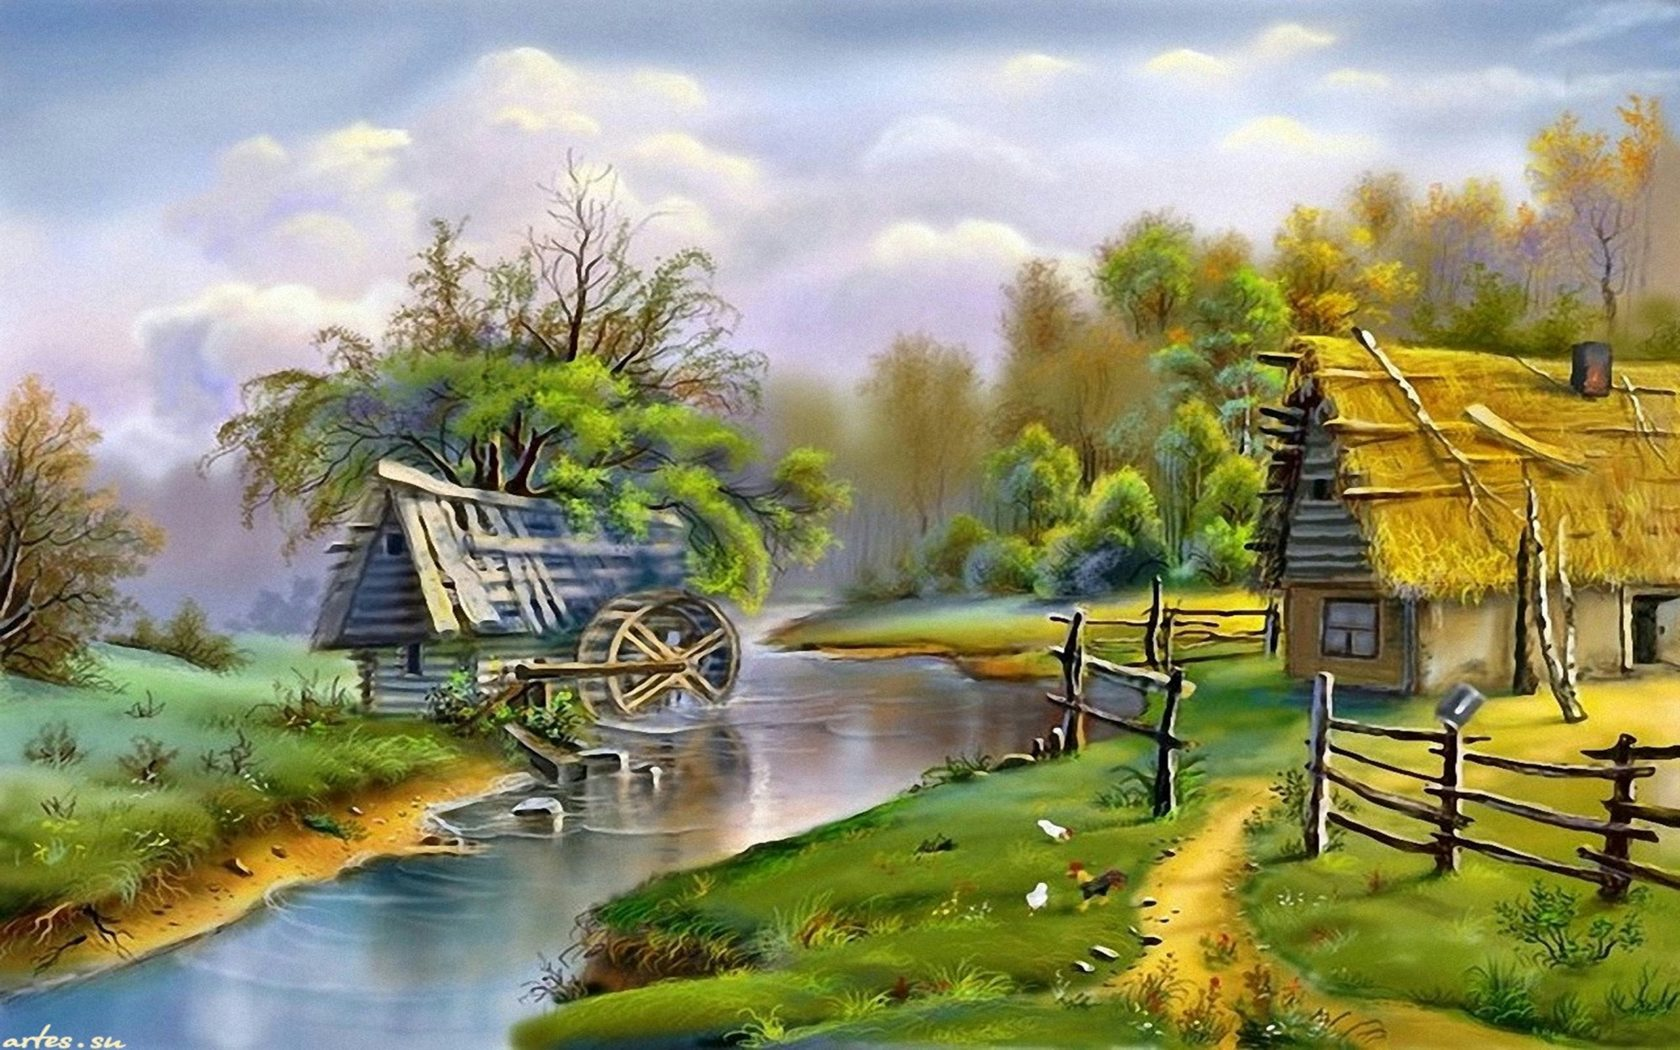 Fall Landscape Wallpapers Free Beautiful Landscape River Mill 0853 Wallpapers13 Com